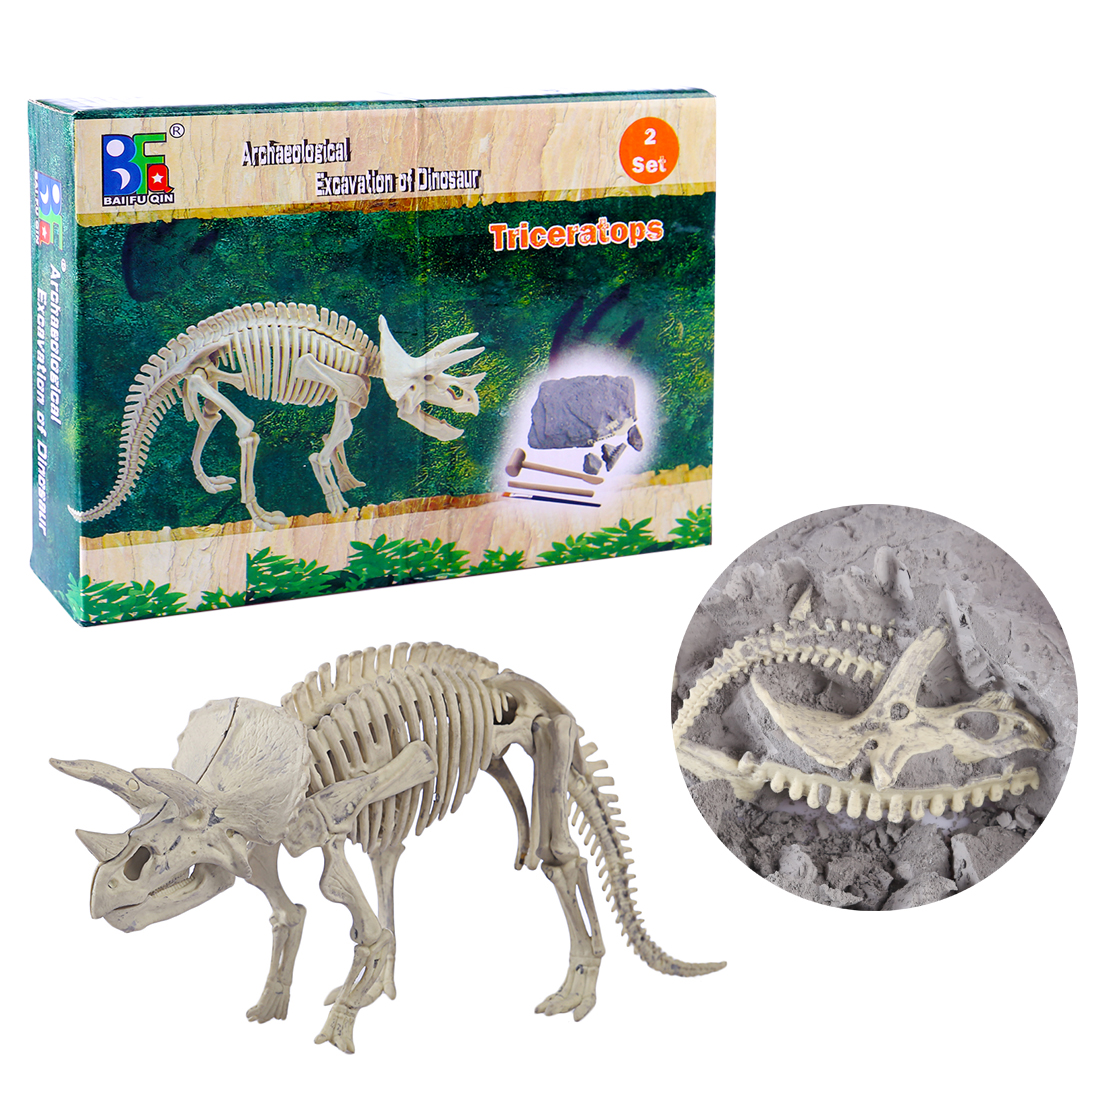 Children Creative Educational Dinosaur Archaeology Excavation Toys - Triceratops